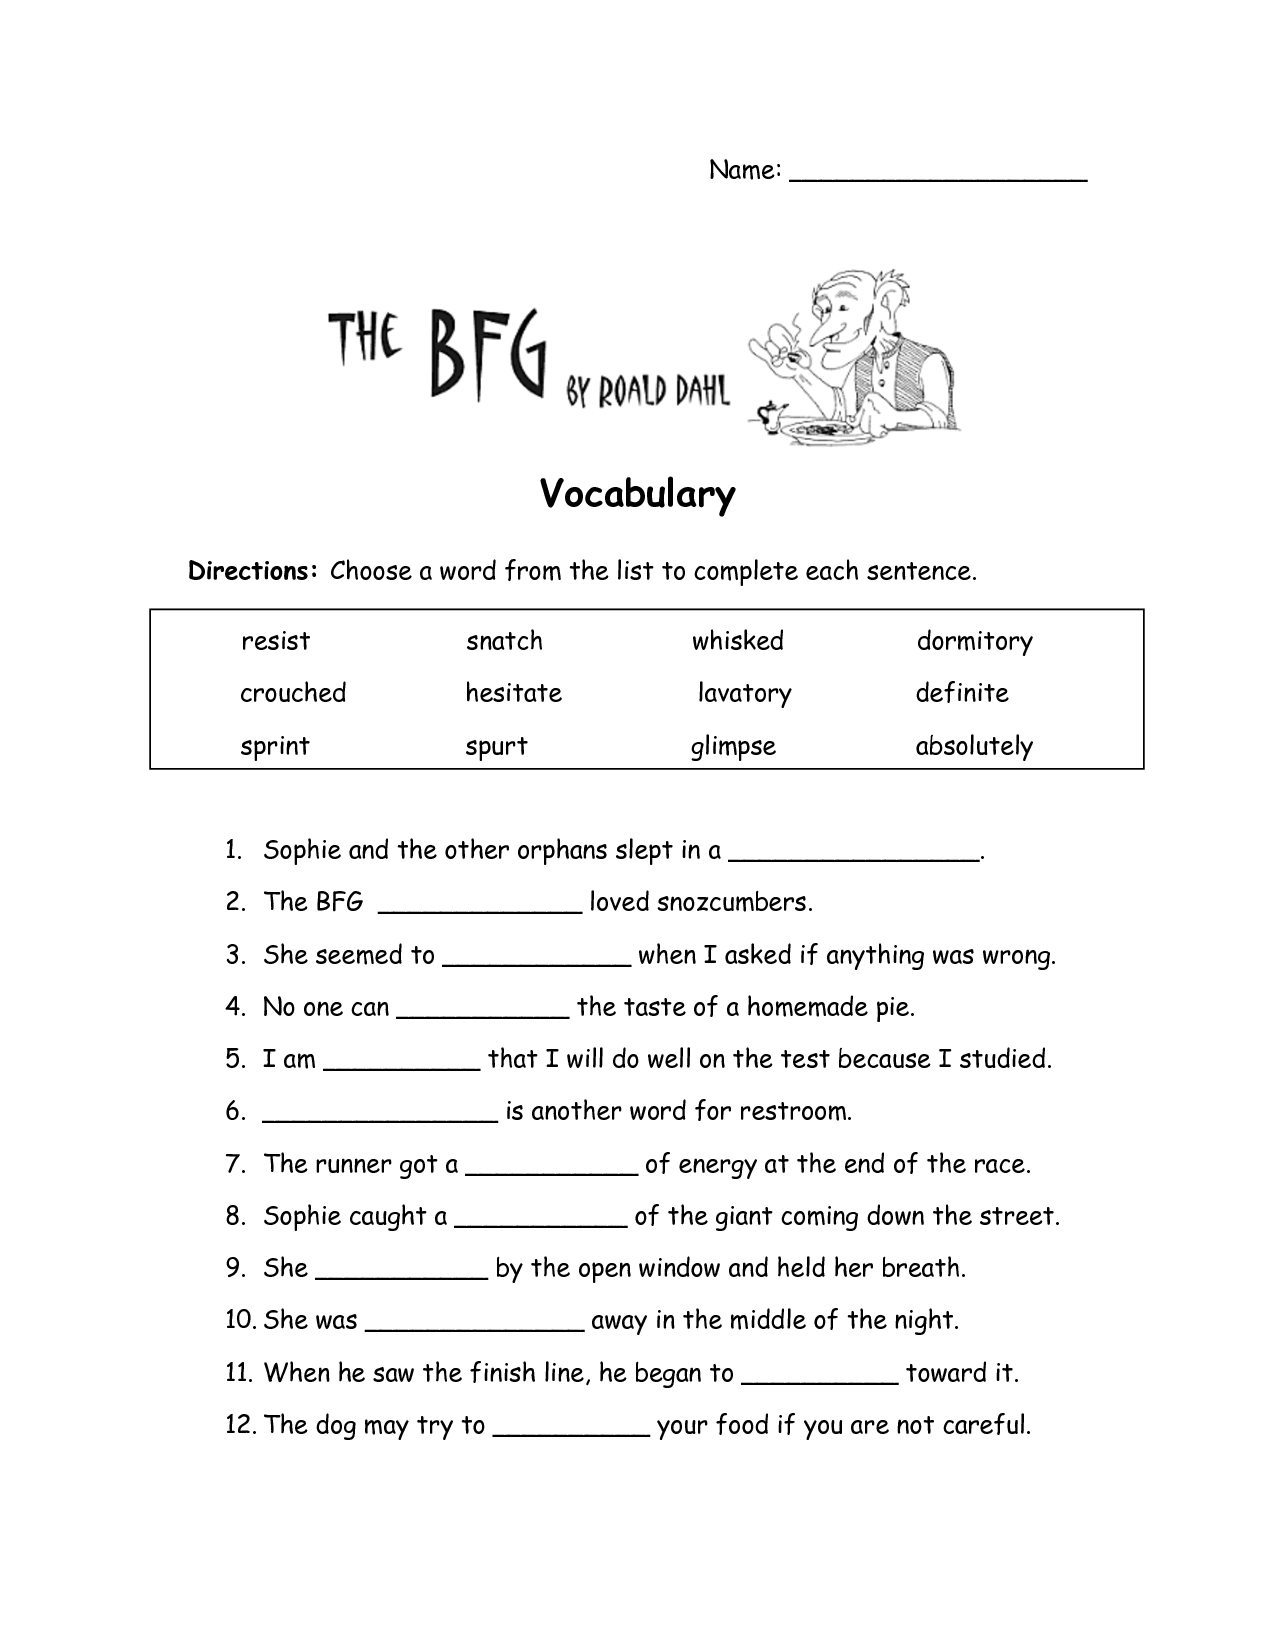 3rd Grade Vocabulary Worksheets   Vocabulary worksheets [ 1650 x 1275 Pixel ]